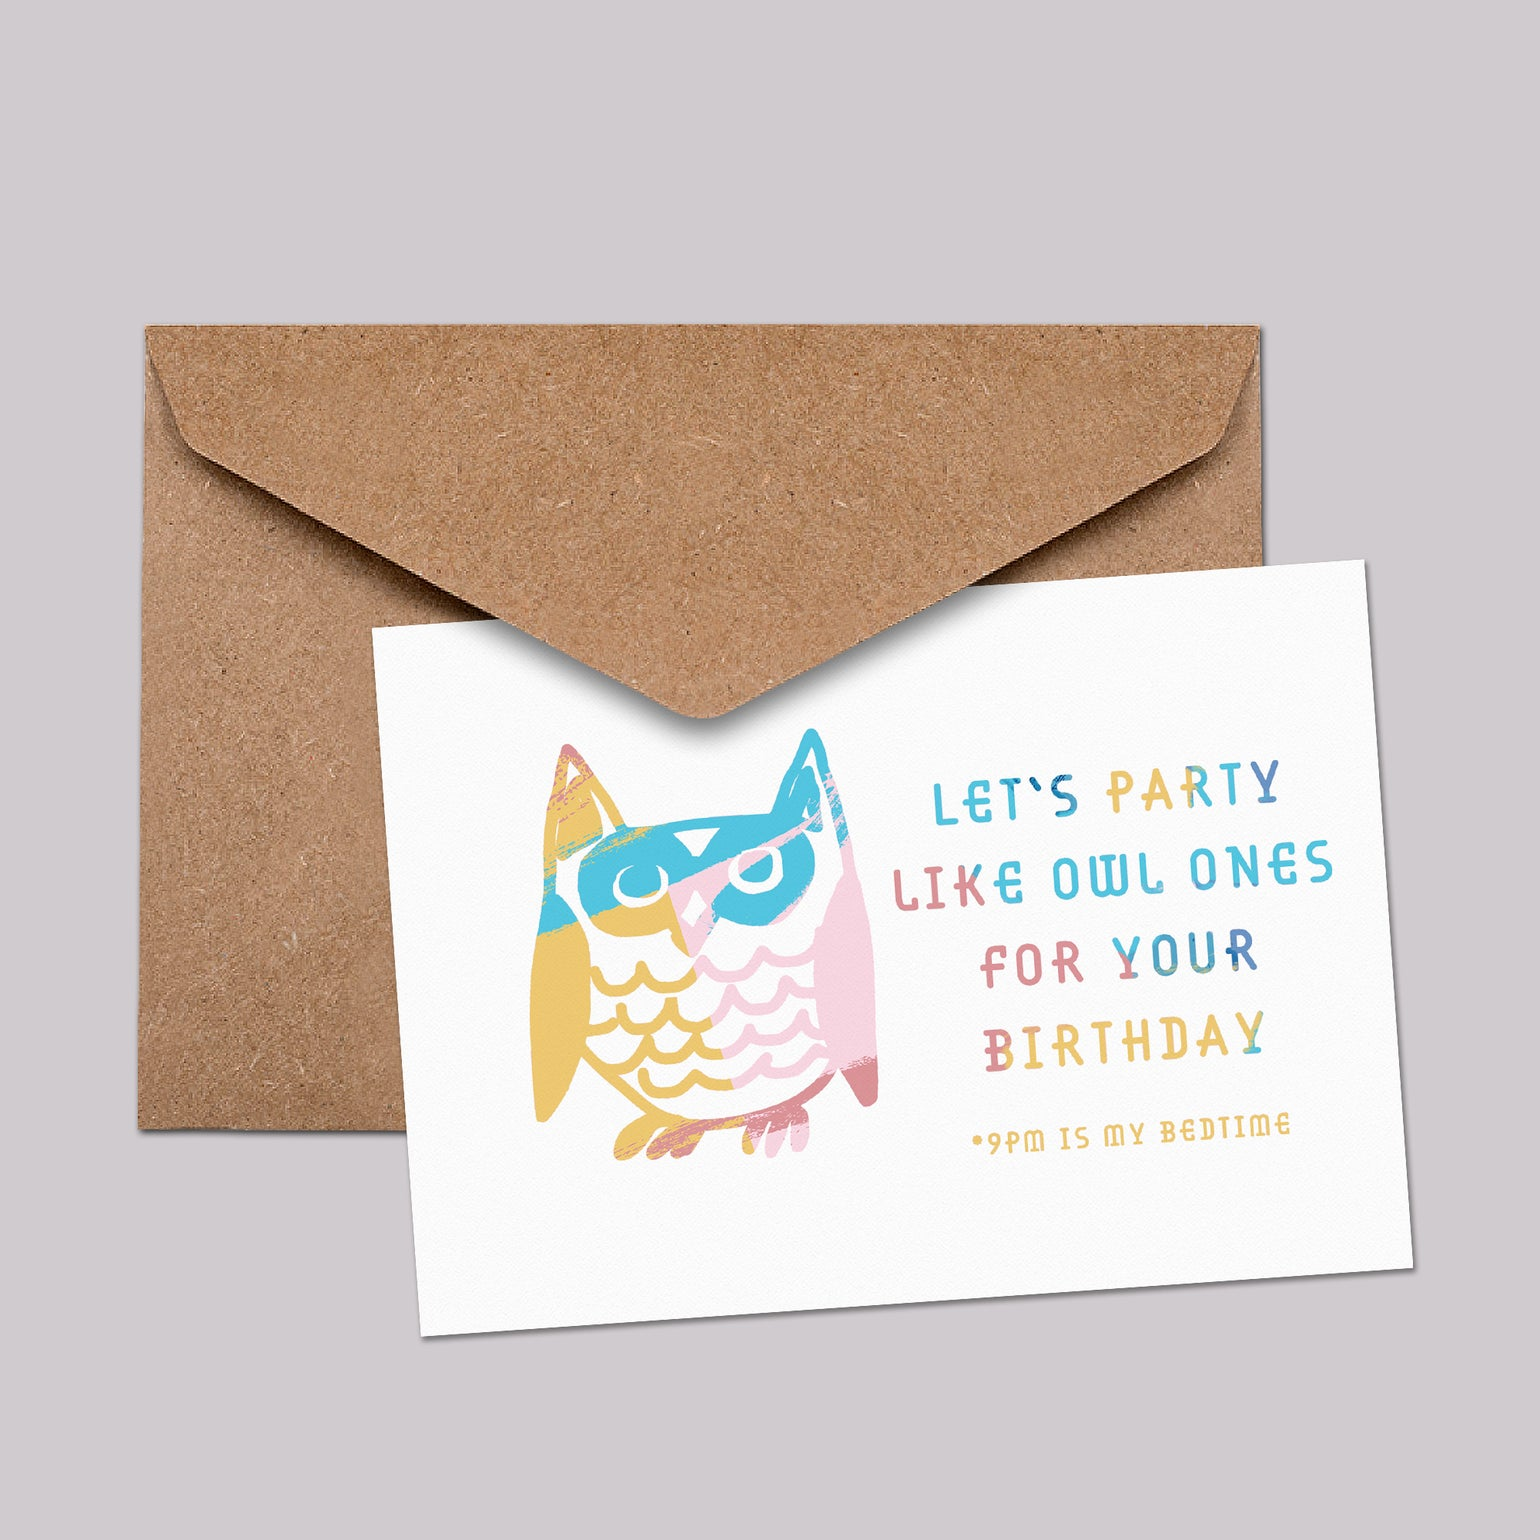 Image of Let's party like owl ones for your birthday **9pm is my bedtime